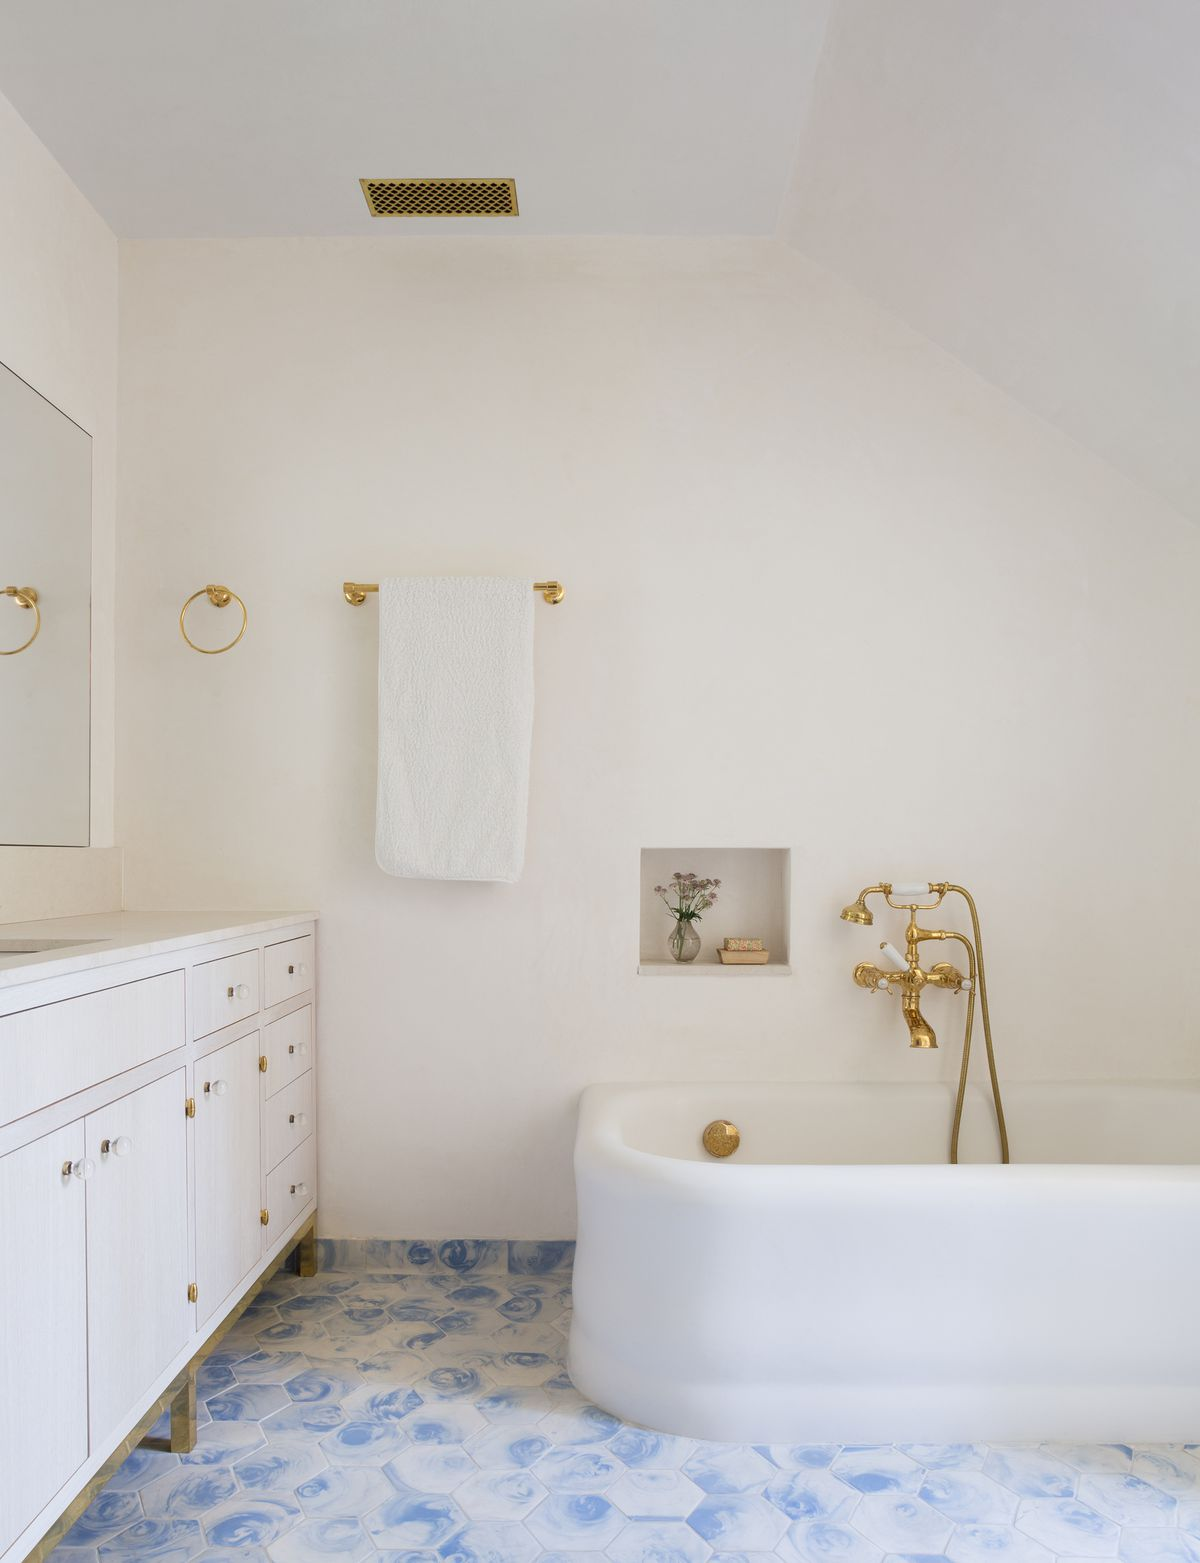 A bathroom. There is a white bathtub with brass fixtures. The floor is decorated in blue and white tiles. There is a white vanity which has a mirror hanging over it. The walls are painted white.